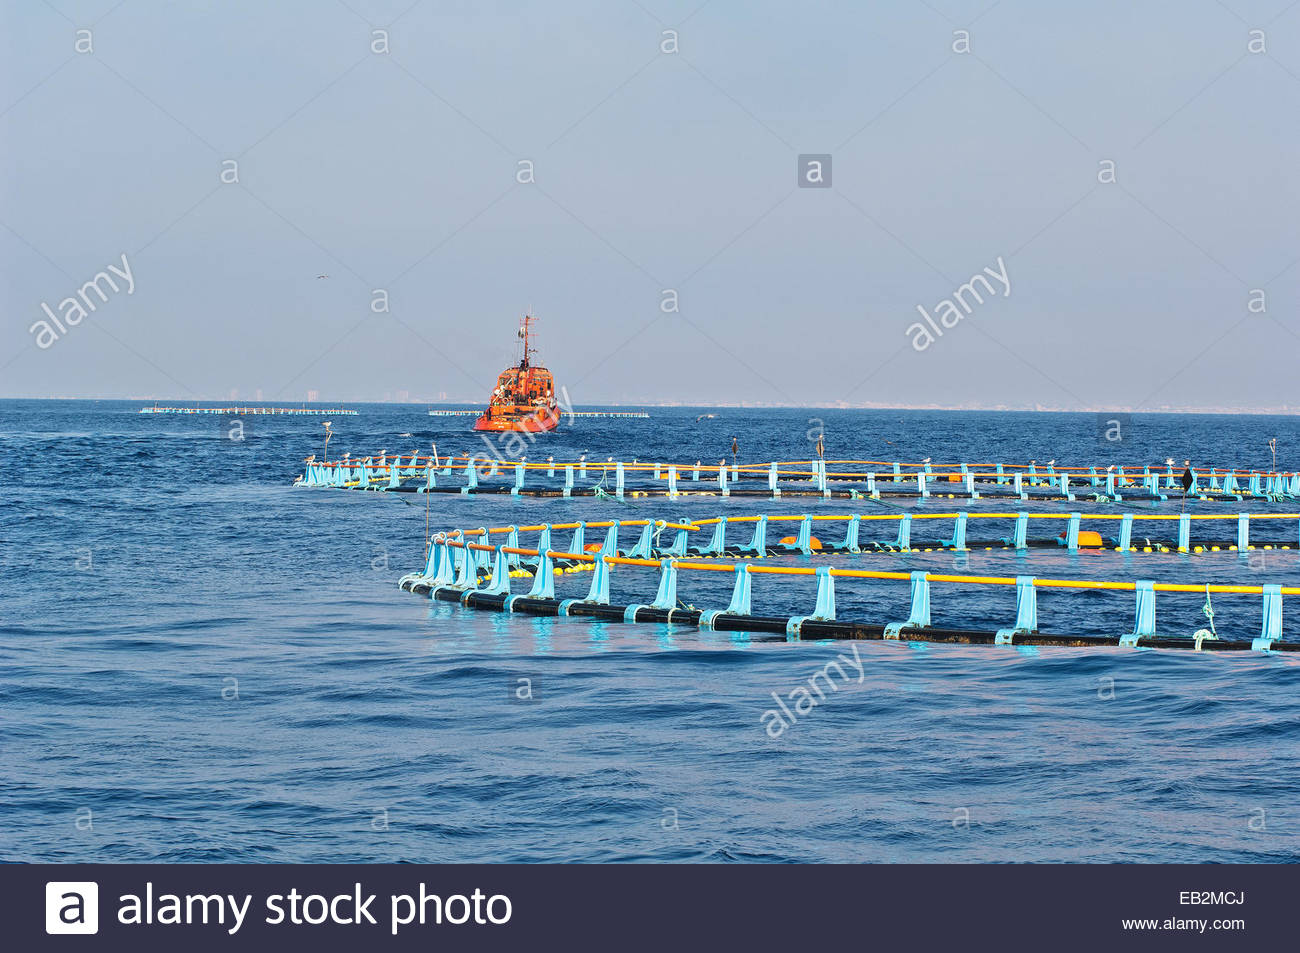 Blue fin tuna pens are being towed to a permanent anchorage where tuna are fed before harvesting. - Stock Image